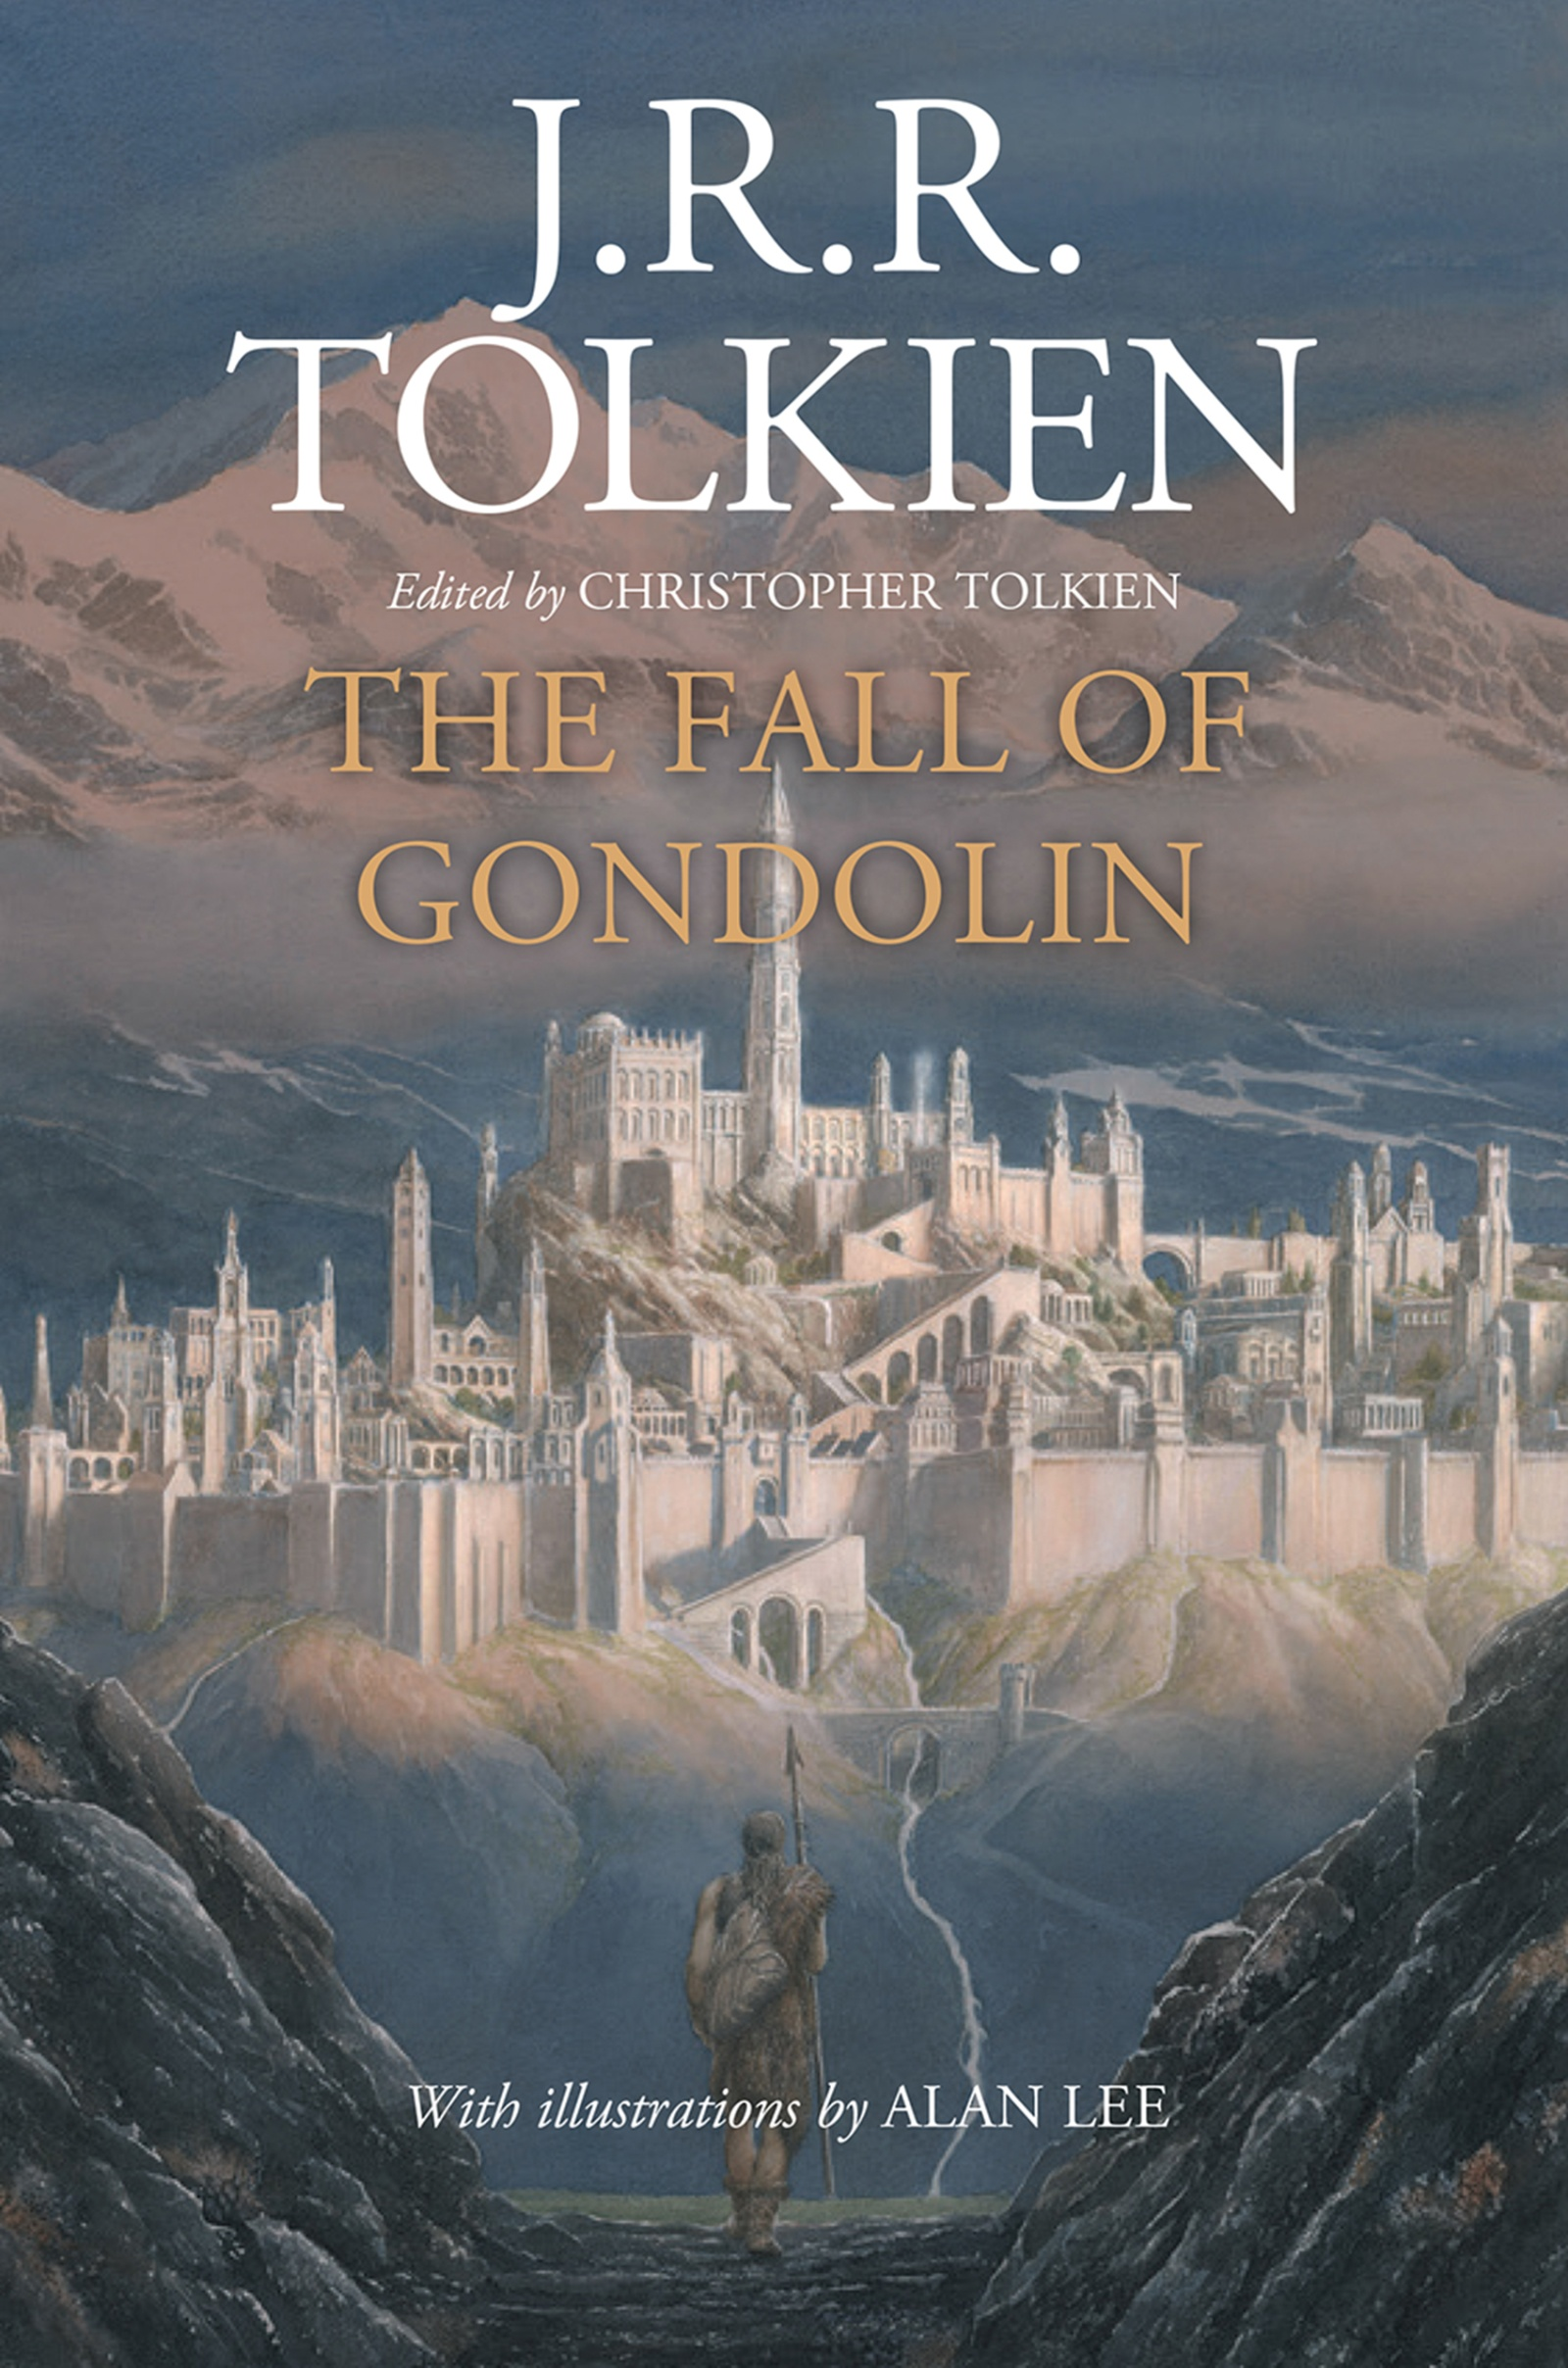 The Fall of Gondolin [electronic resource]